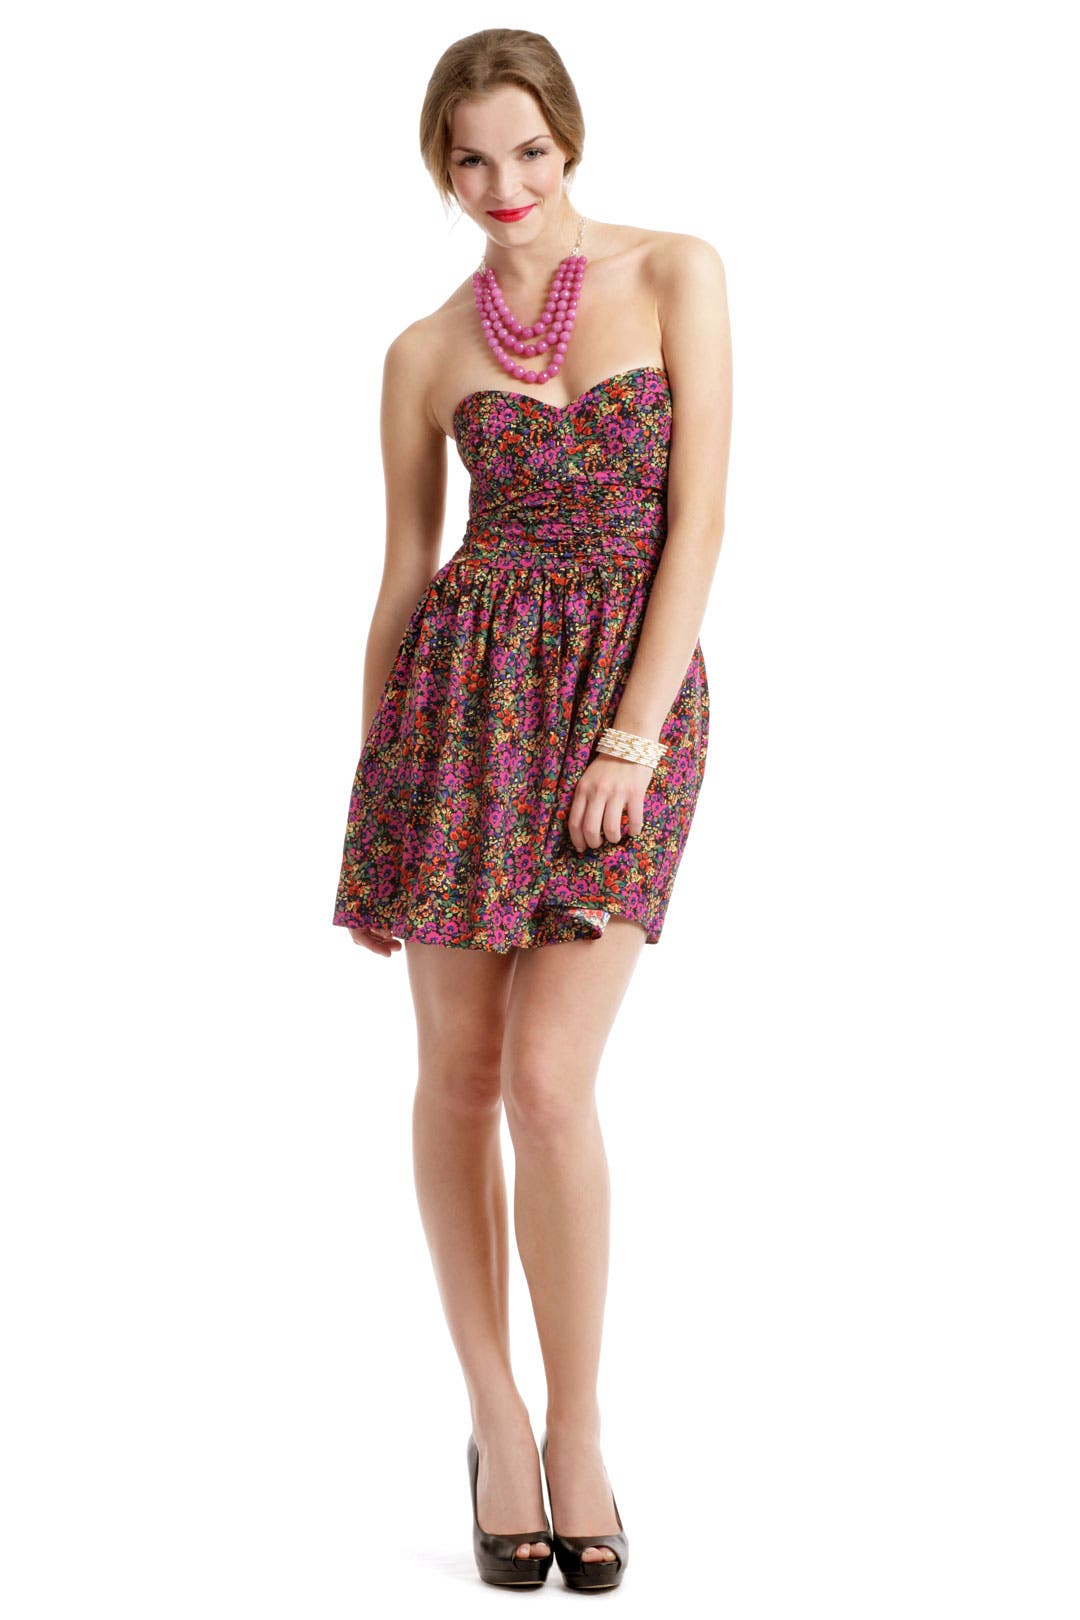 Ditzy Floral Dress by Parker